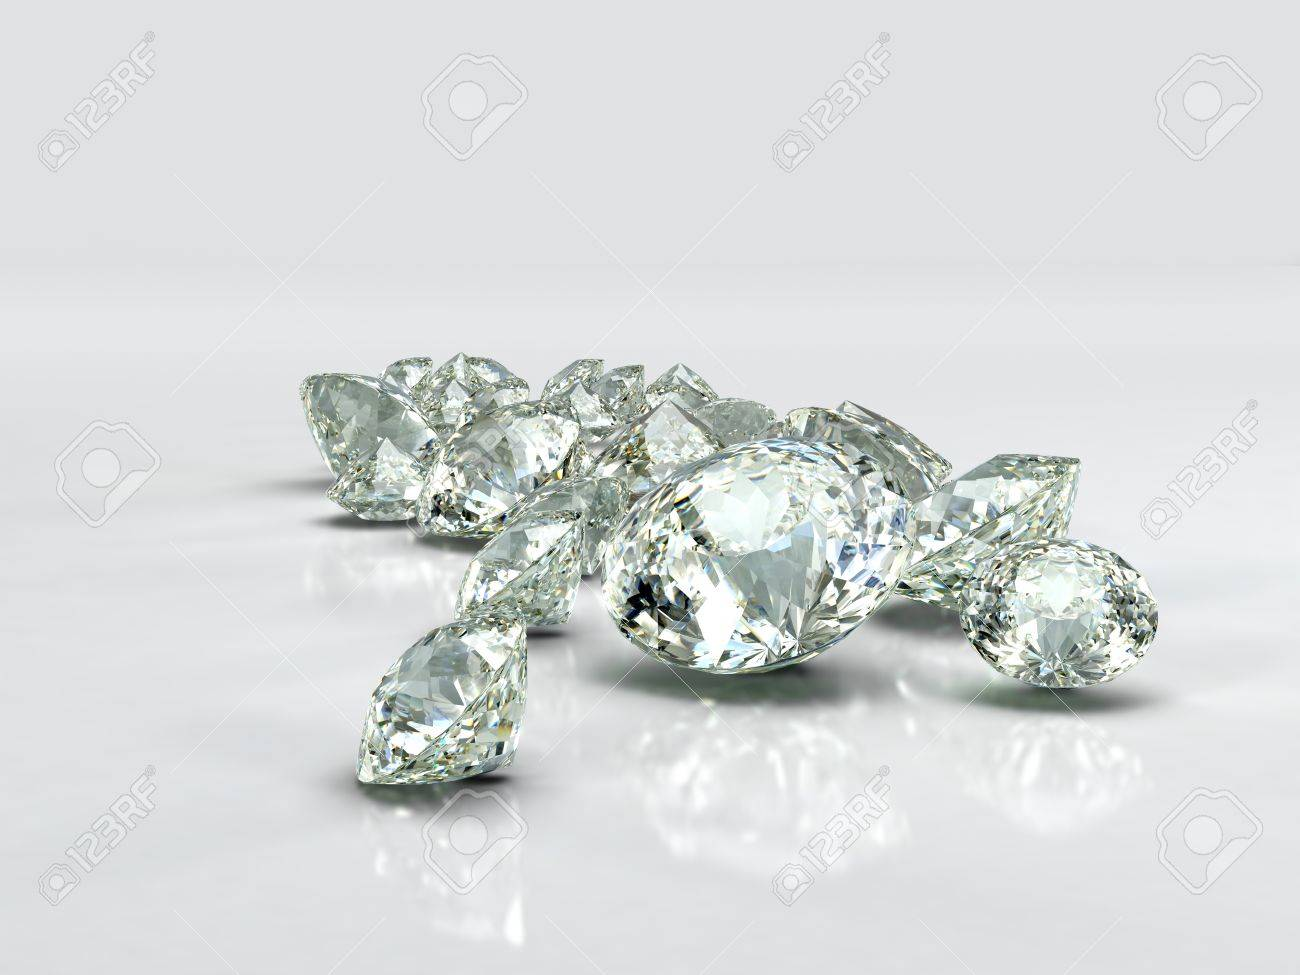 isolated high jewel on white surface photo light sparkling quality beautiful background reflective a diamond